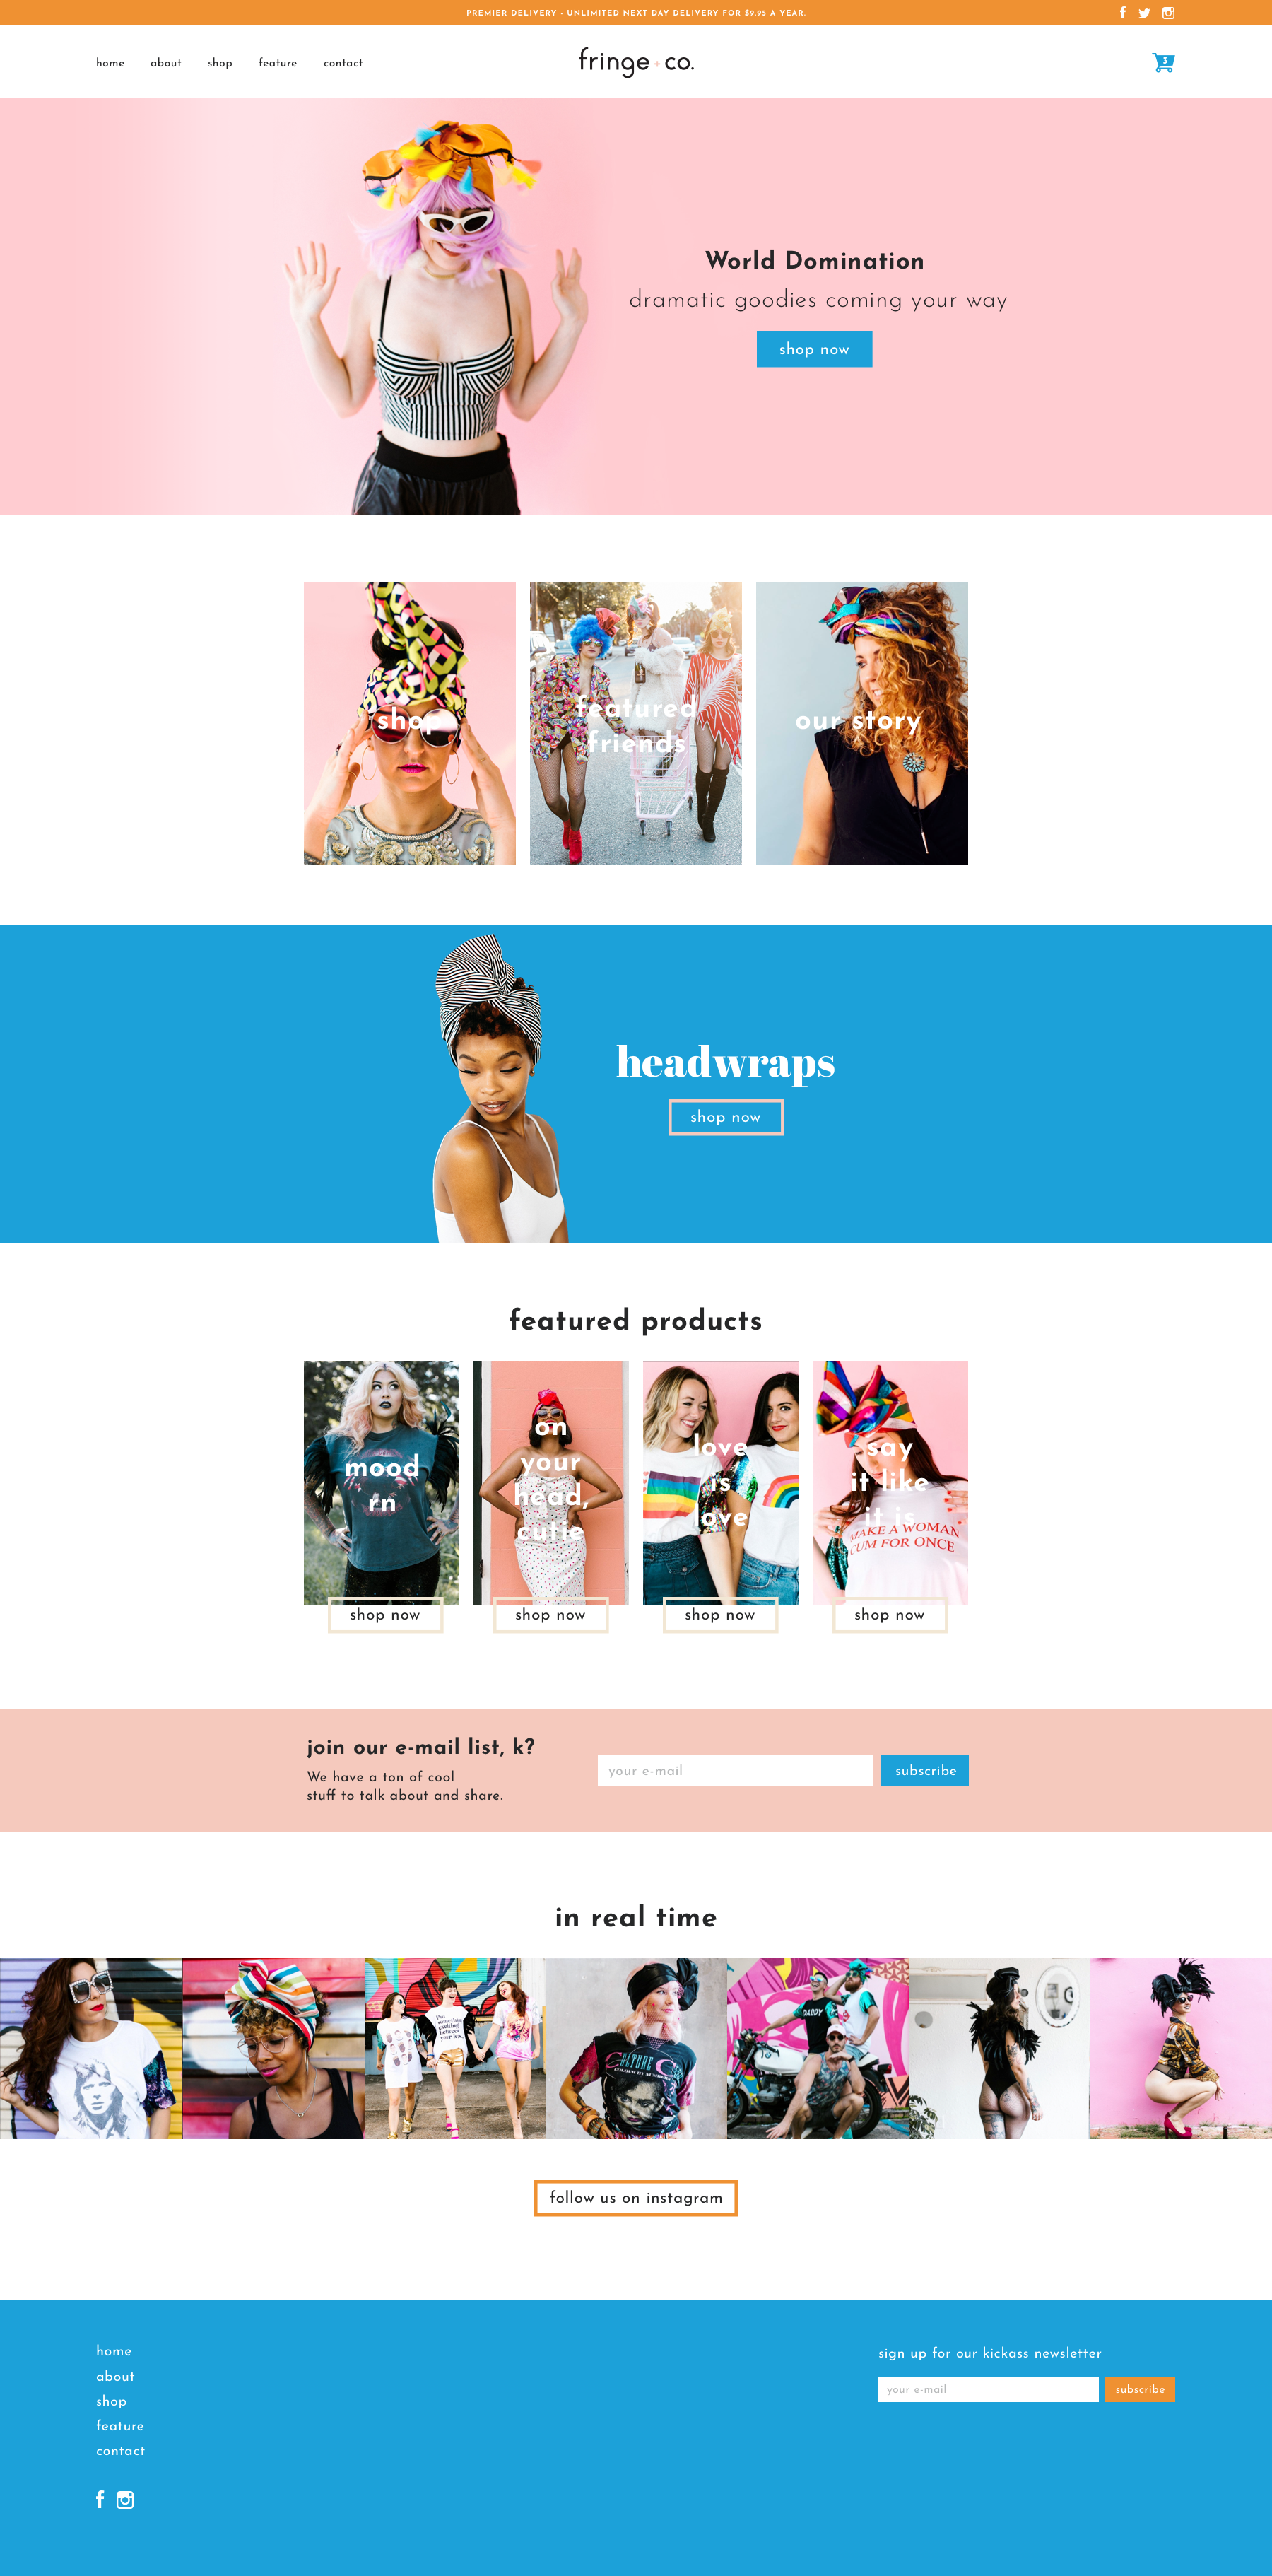 Fringe and Co fashion brand homepage